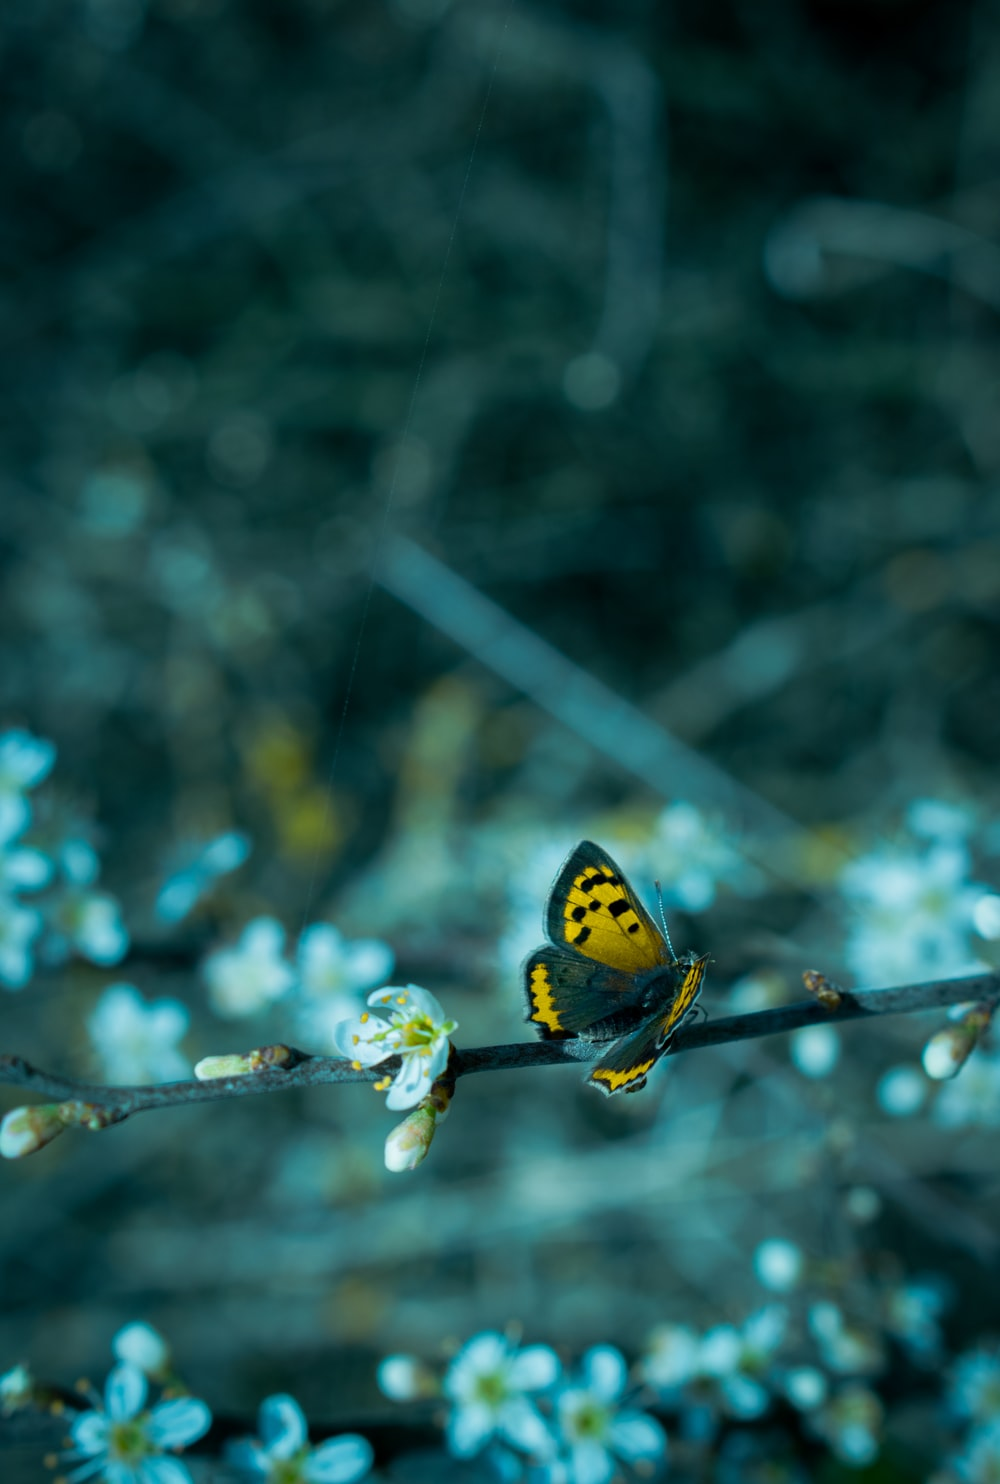 yellow and black butterfly perched on brown stem in tilt shift lens